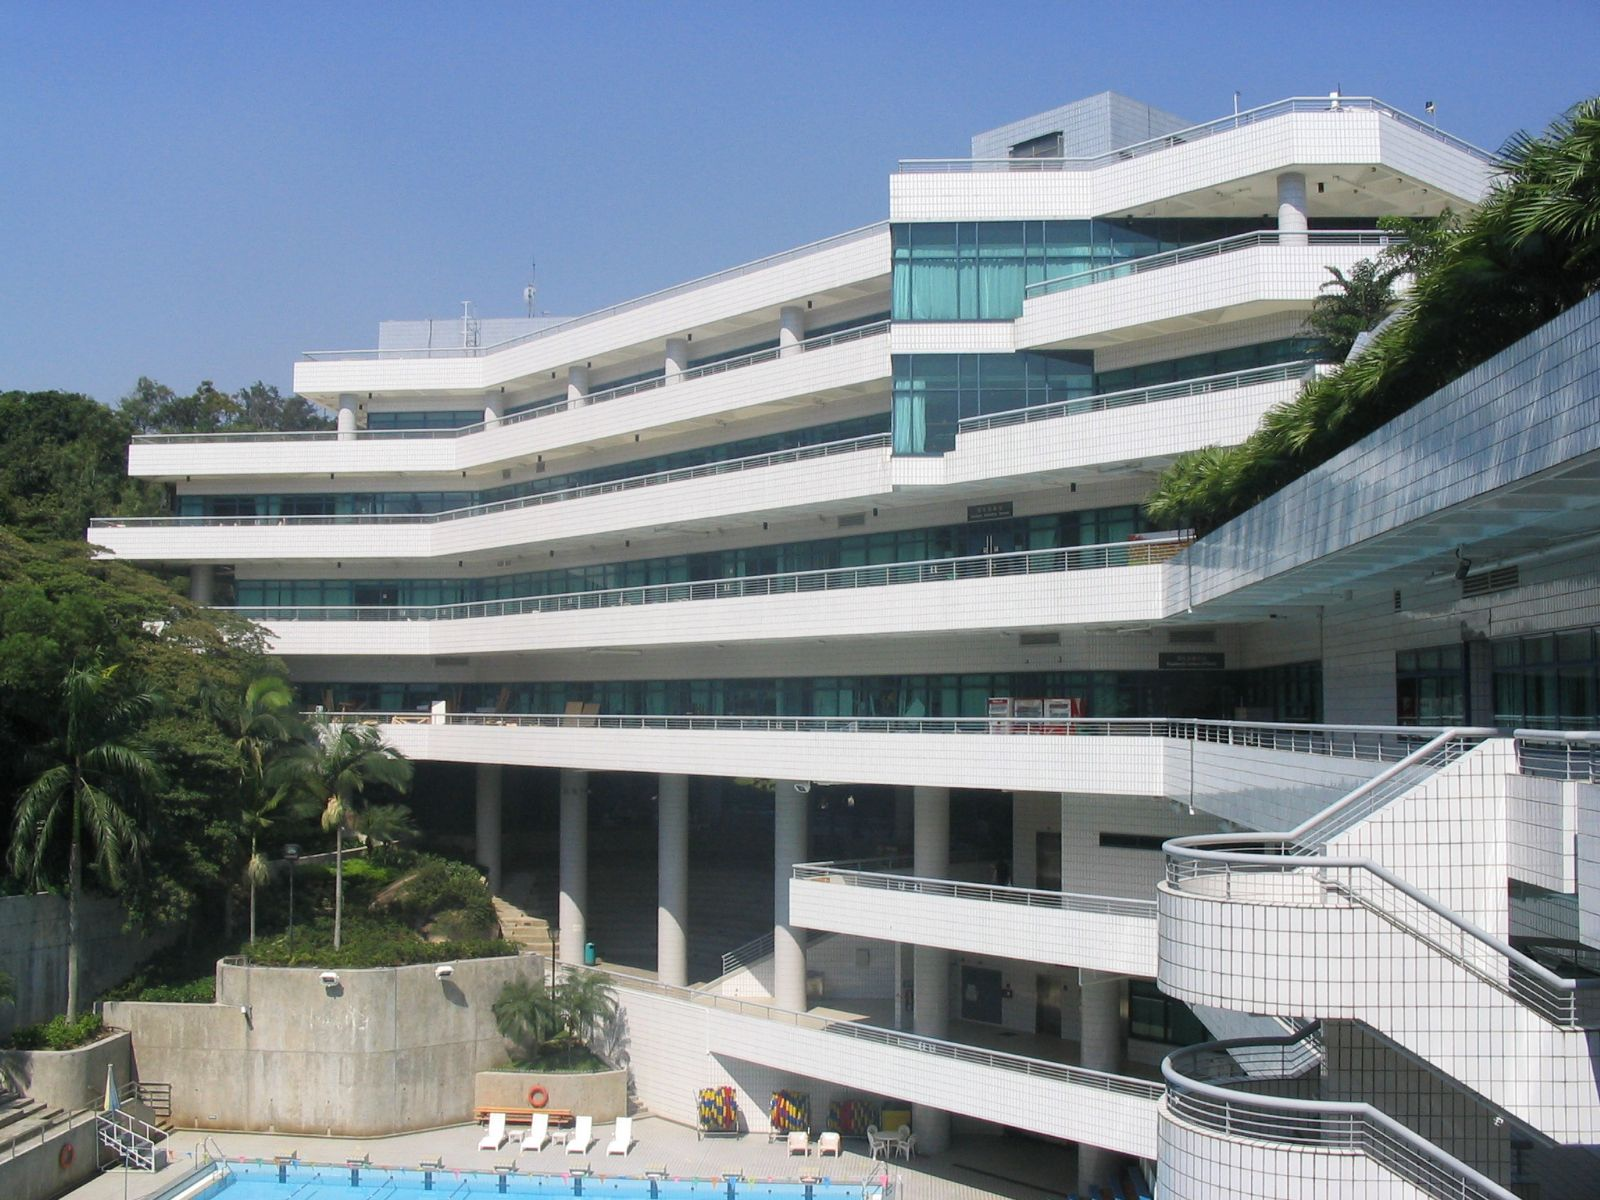 City university of hong kong wikipedia Tong high school swimming pool